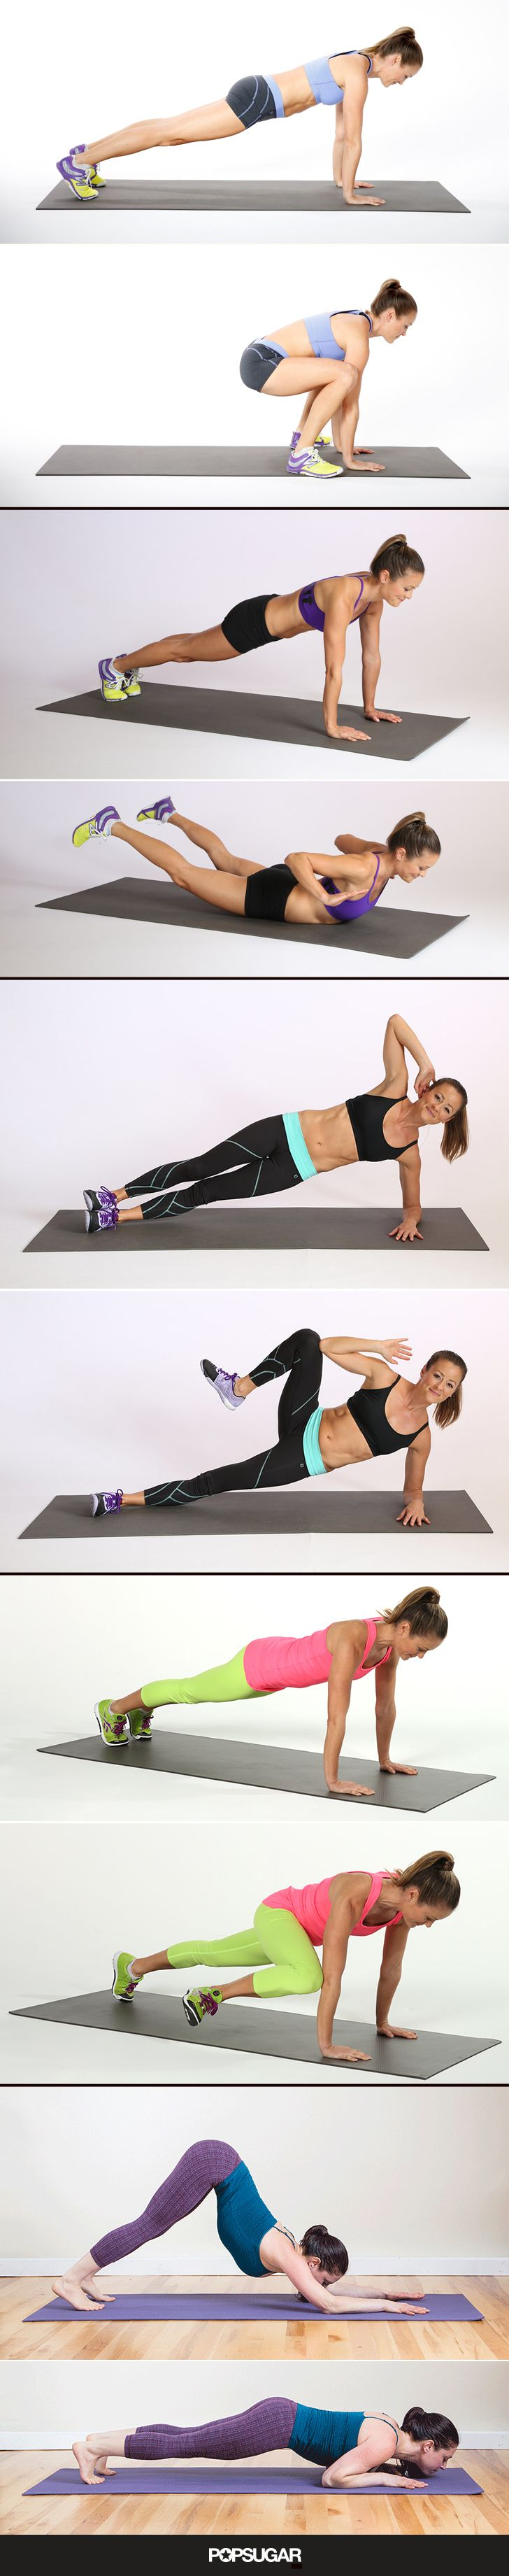 Check out this 3-minute plank workout. Short yet effective!